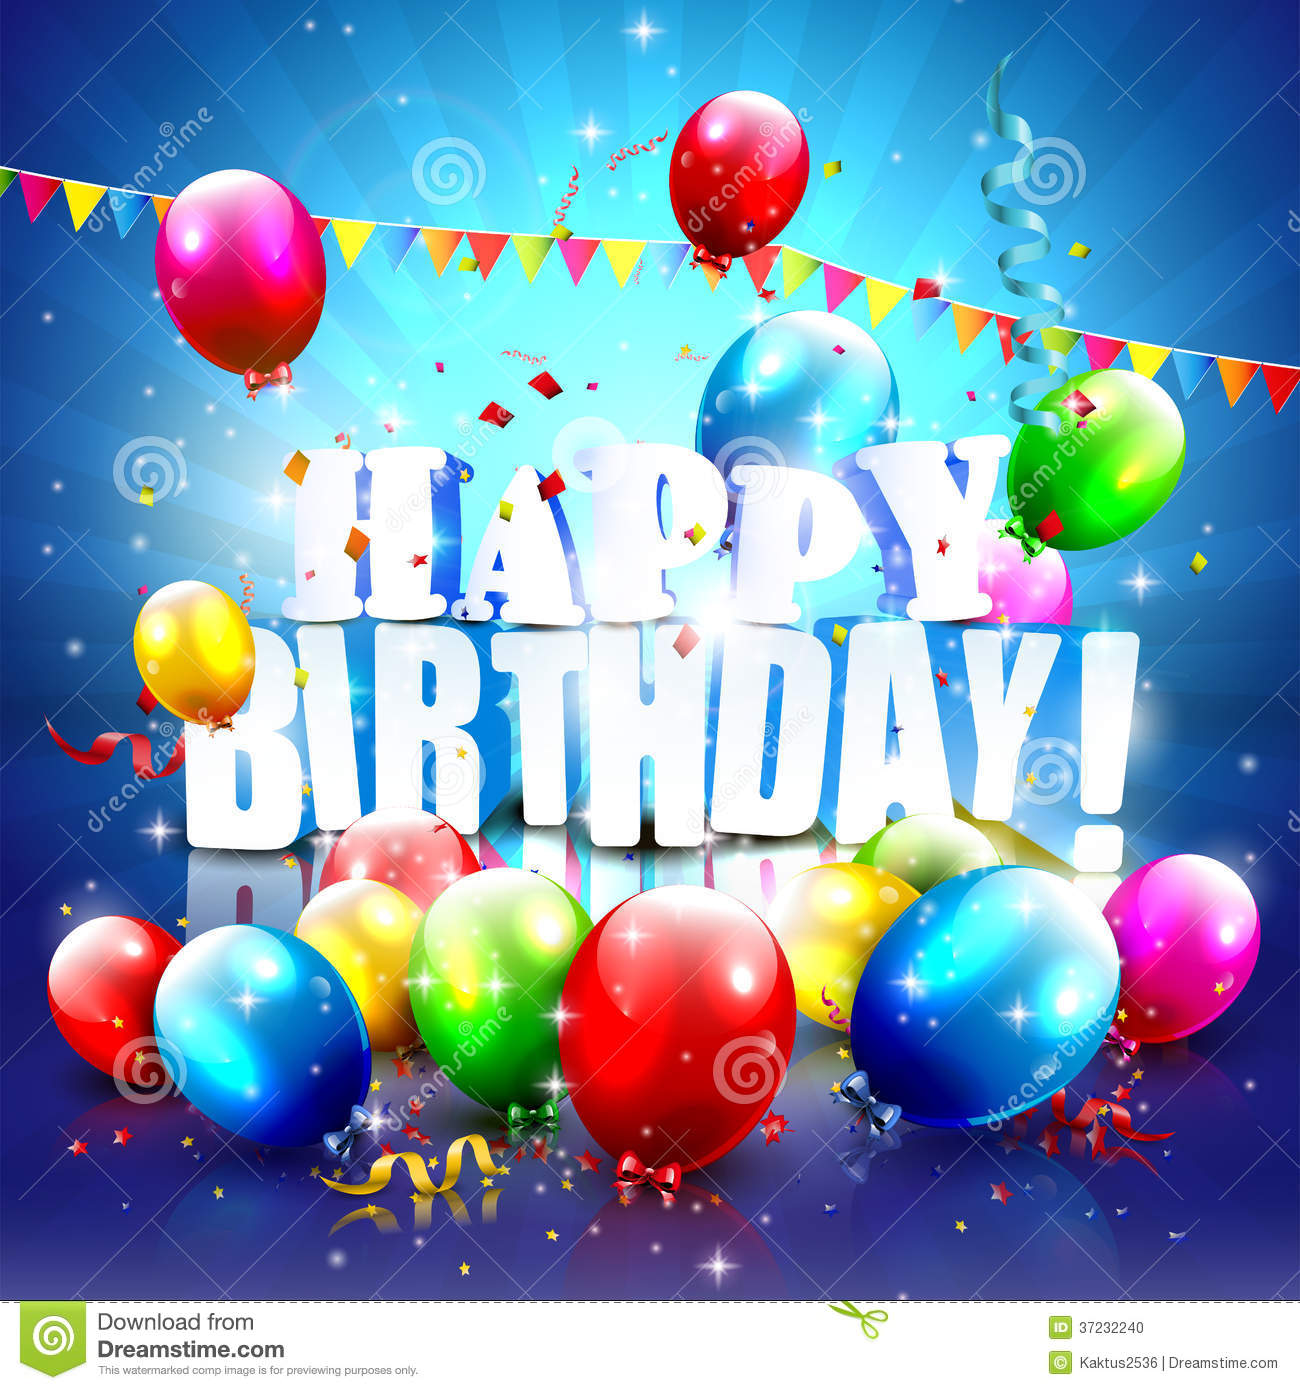 Birthday Poster Stock Photo - Image: 37232240